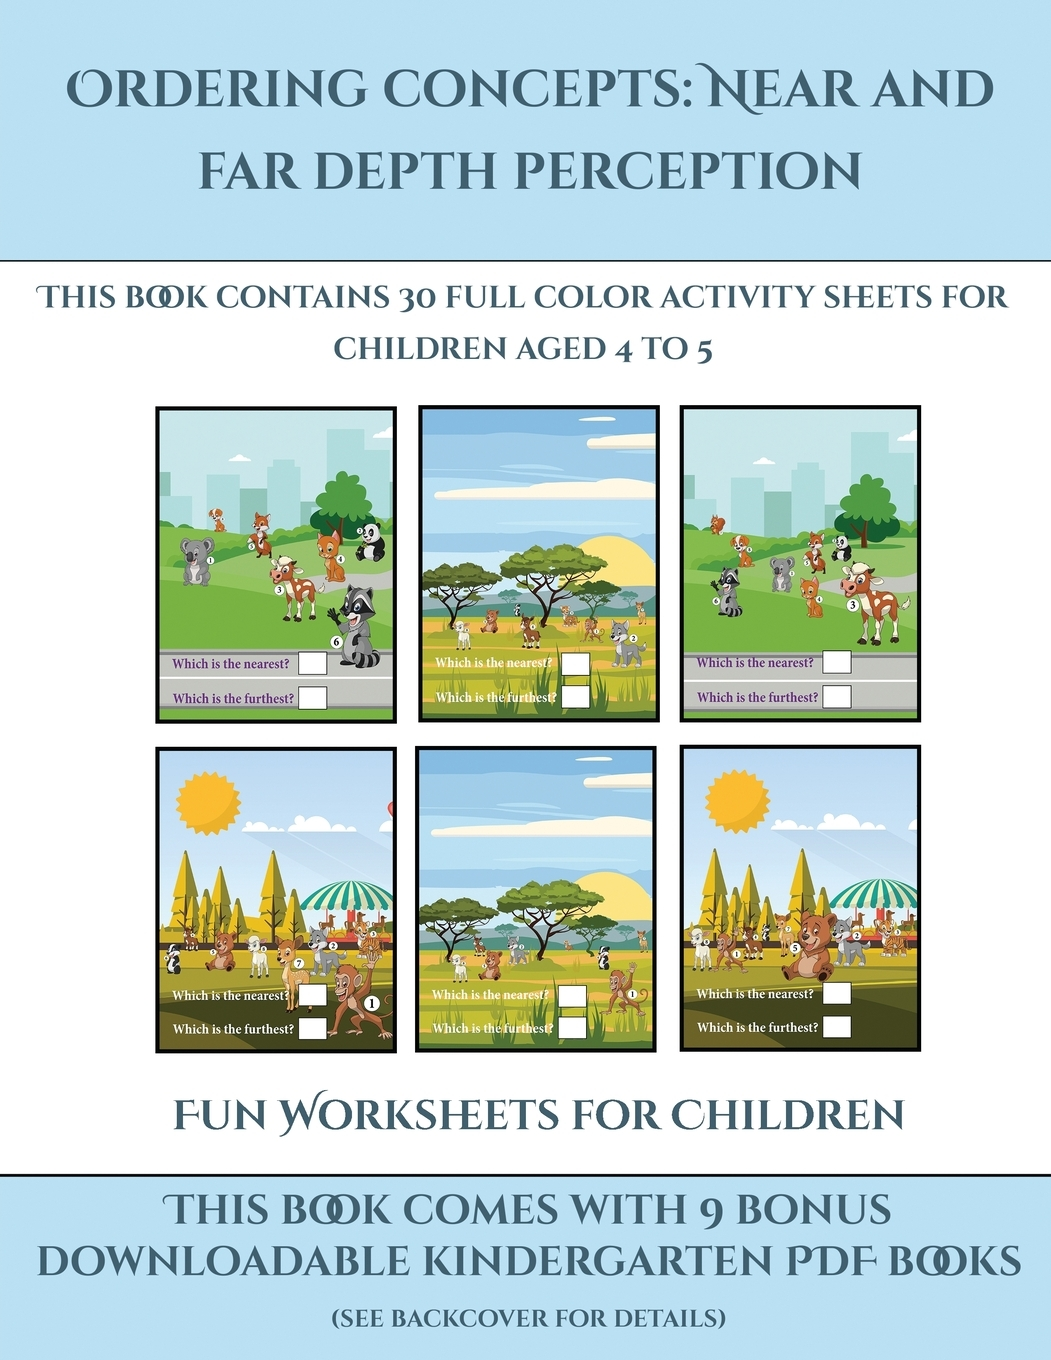 Fun Worksheets For Children Fun Worksheets For Children